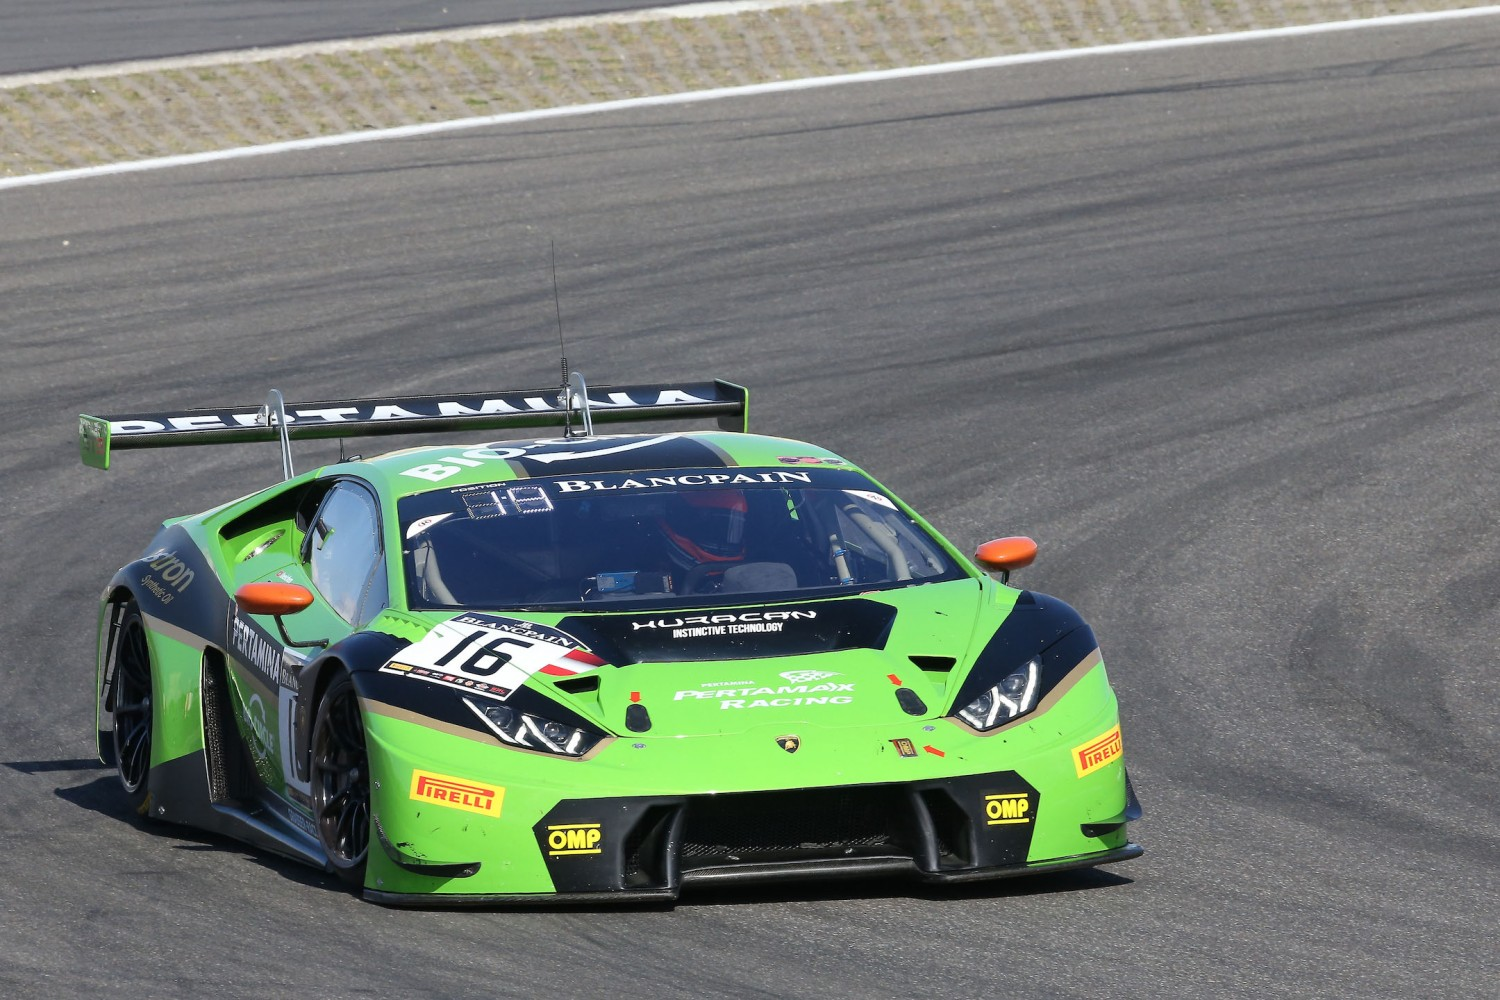 Mirko Bortolotti puts Lamborghini on top in pre-qualifying